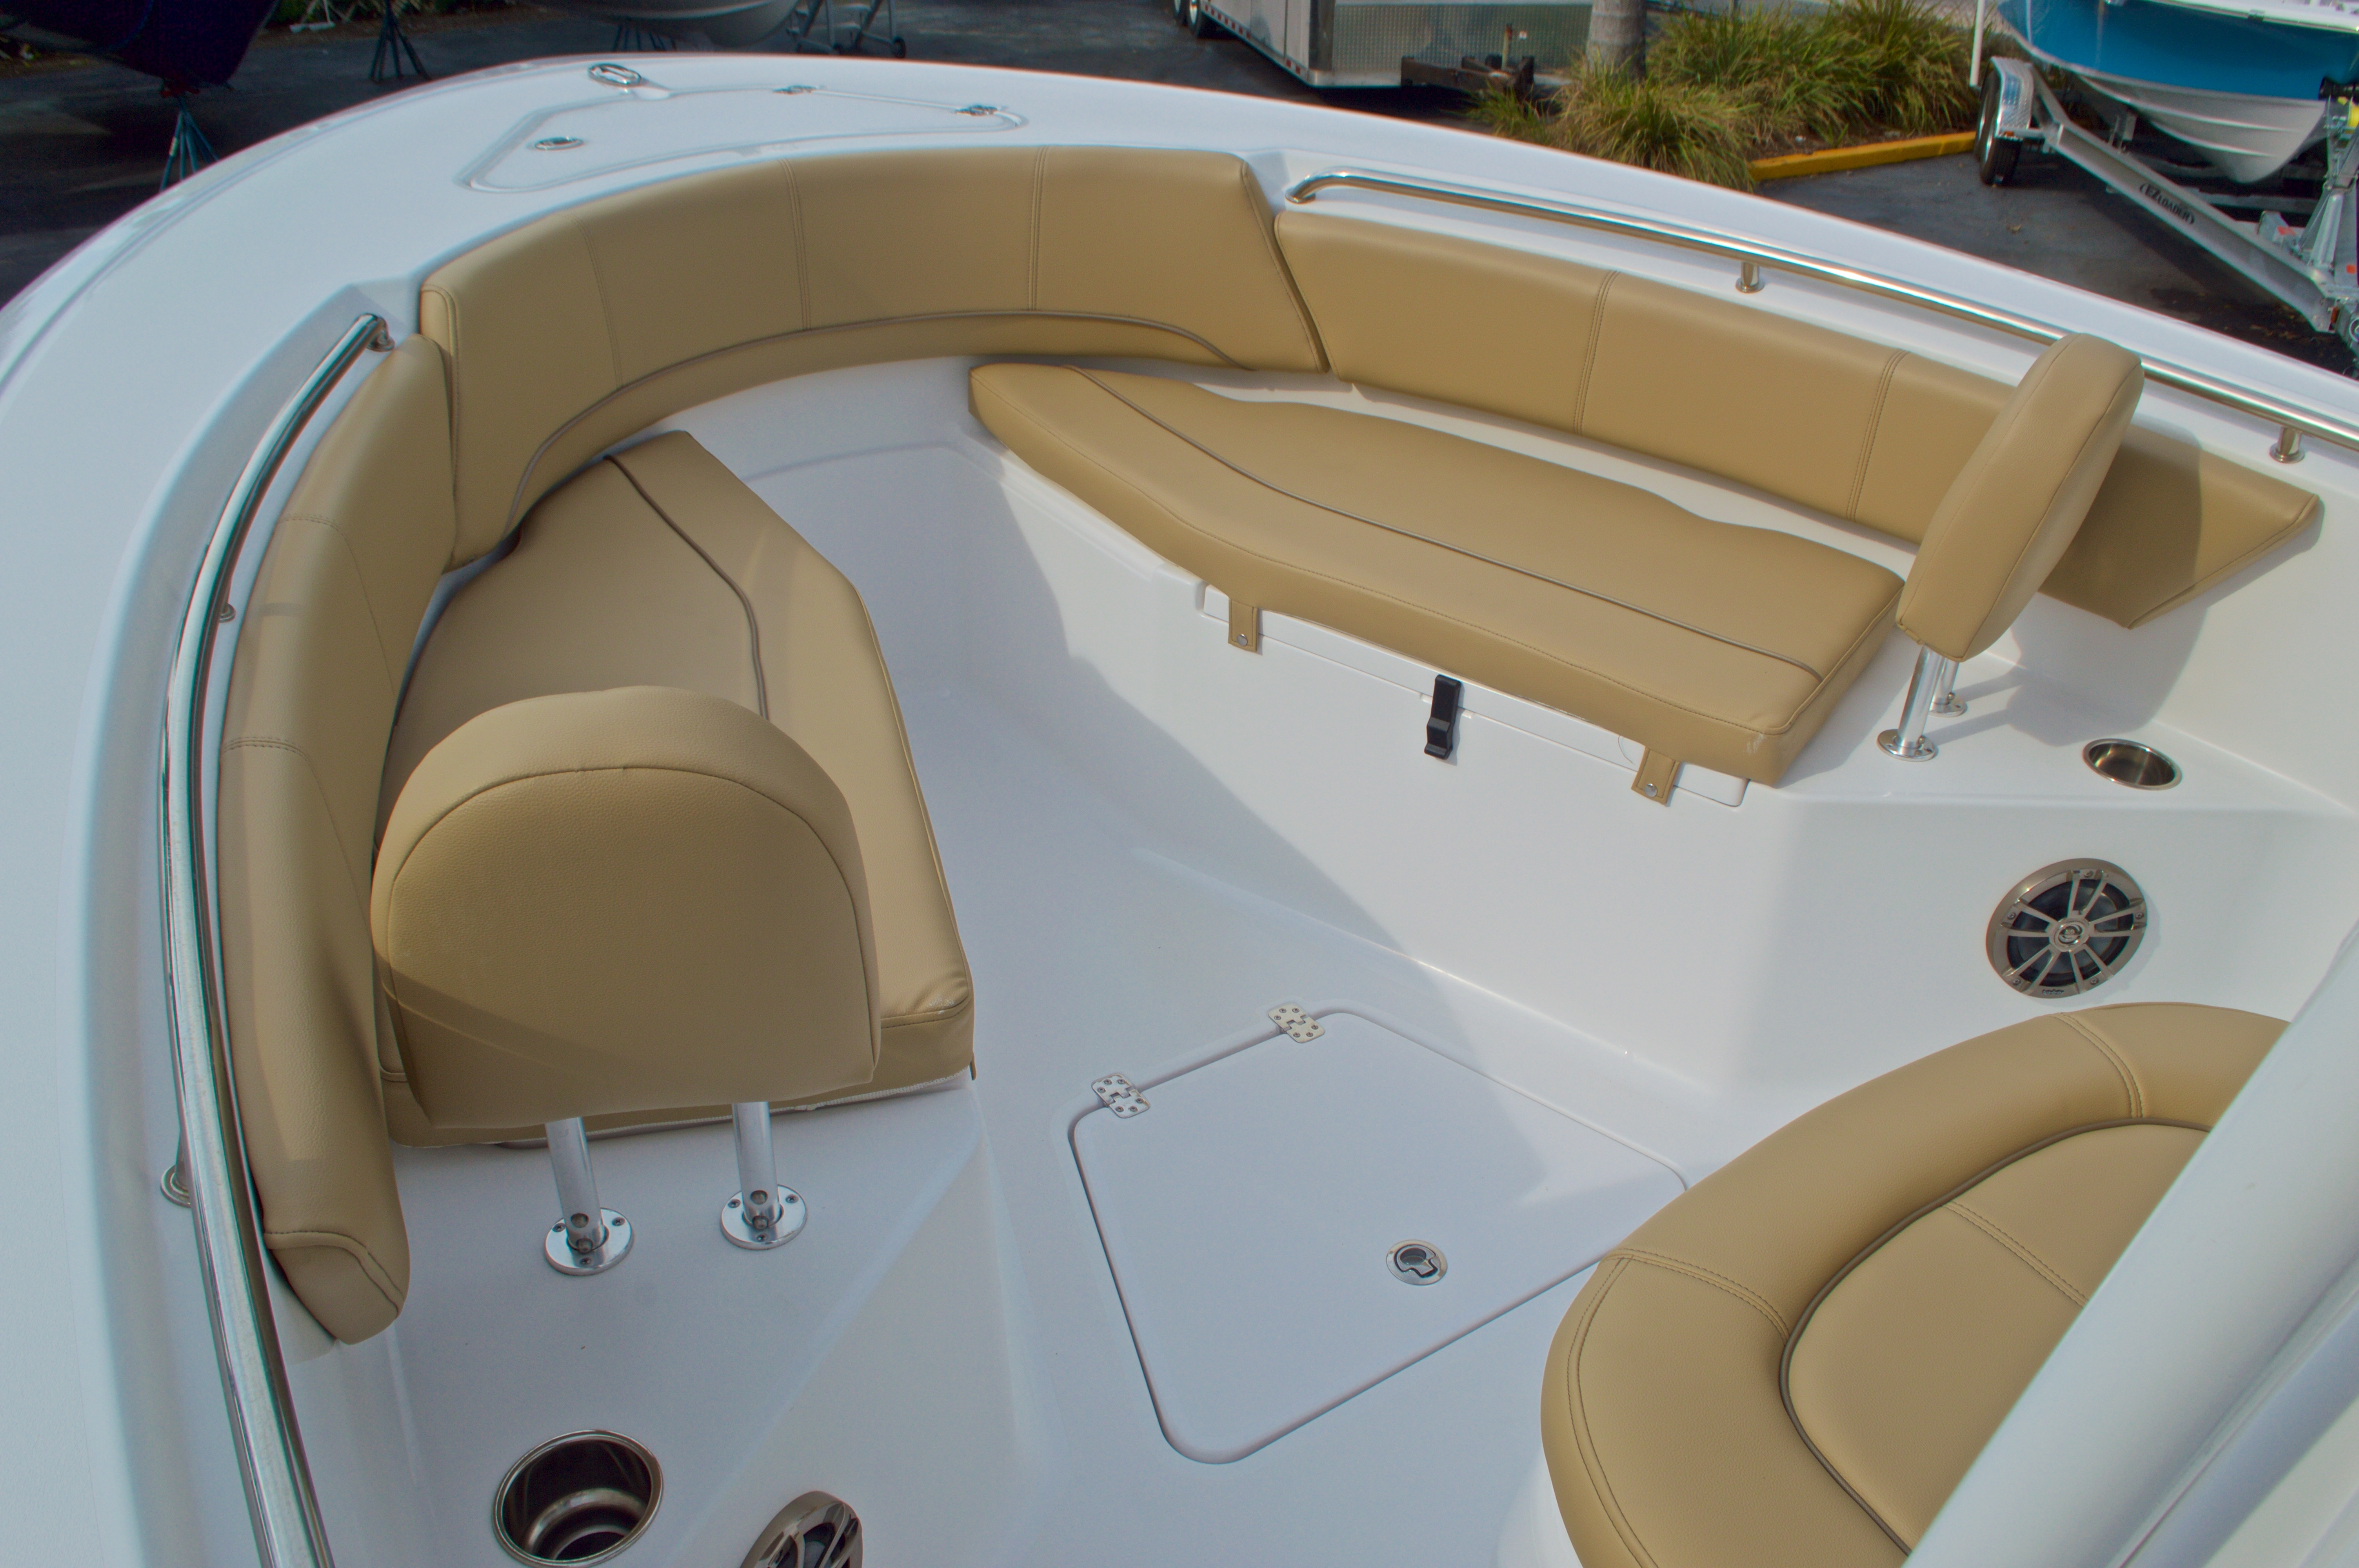 Thumbnail 37 for New 2016 Sportsman Open 232 Center Console boat for sale in Vero Beach, FL